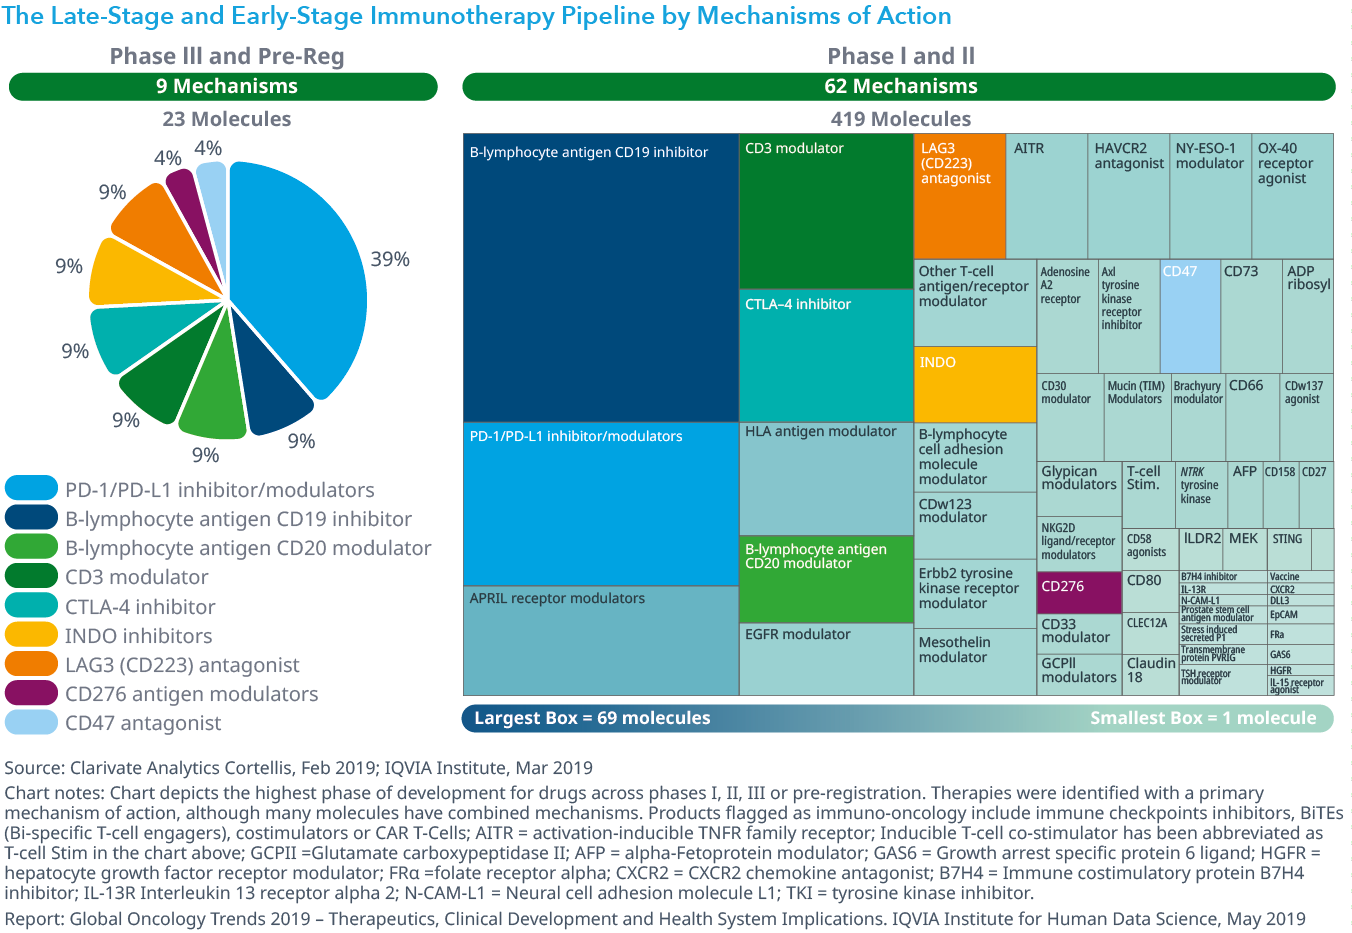 chart-10-the-late-stage-and-early-stage-immunotherapy-pipeline-by-mechanisms-of-action